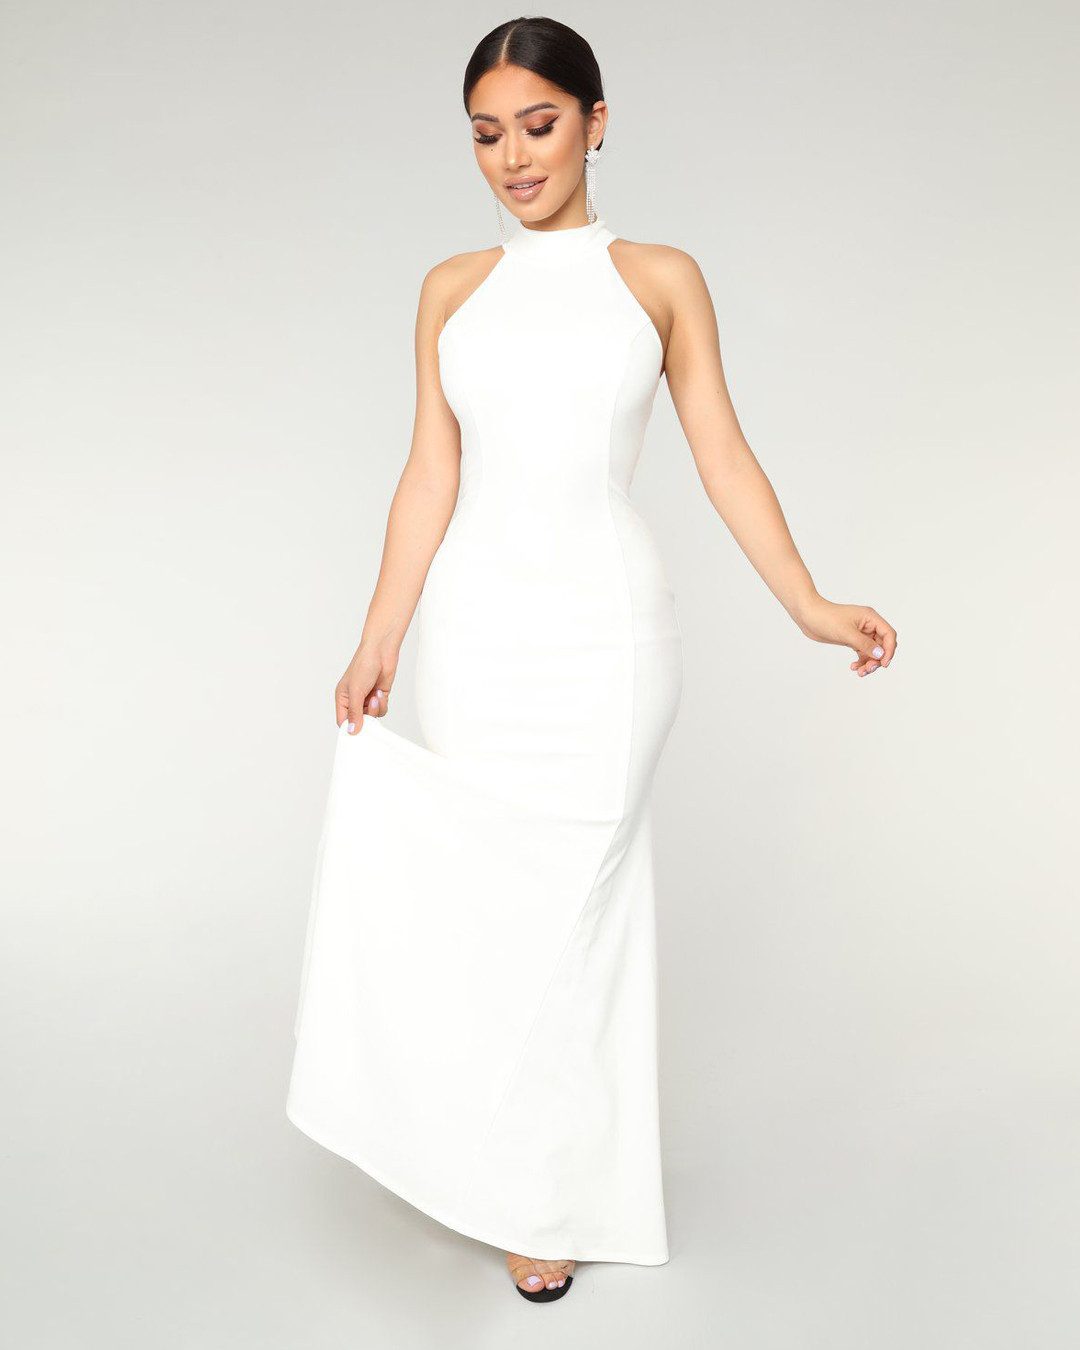 ESC: Meghan Markle, Dress